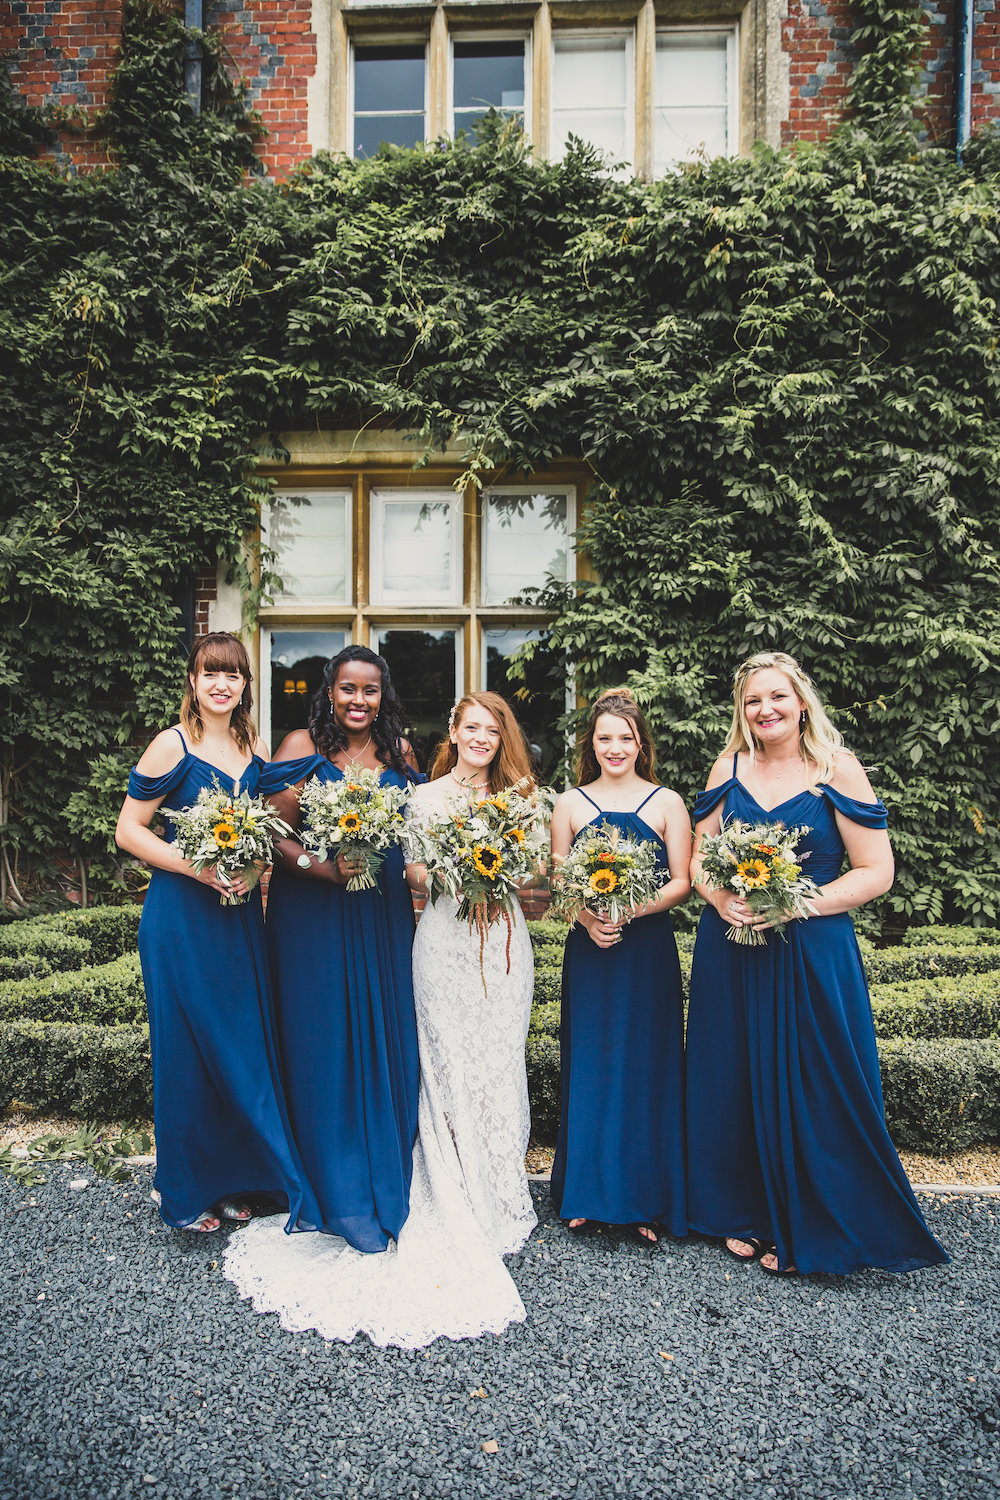 Bridesmaids Bridesmaid Dress Dresses Blue Sunflower Bouquets Burley Manor Wedding Becky Bailey Photographer